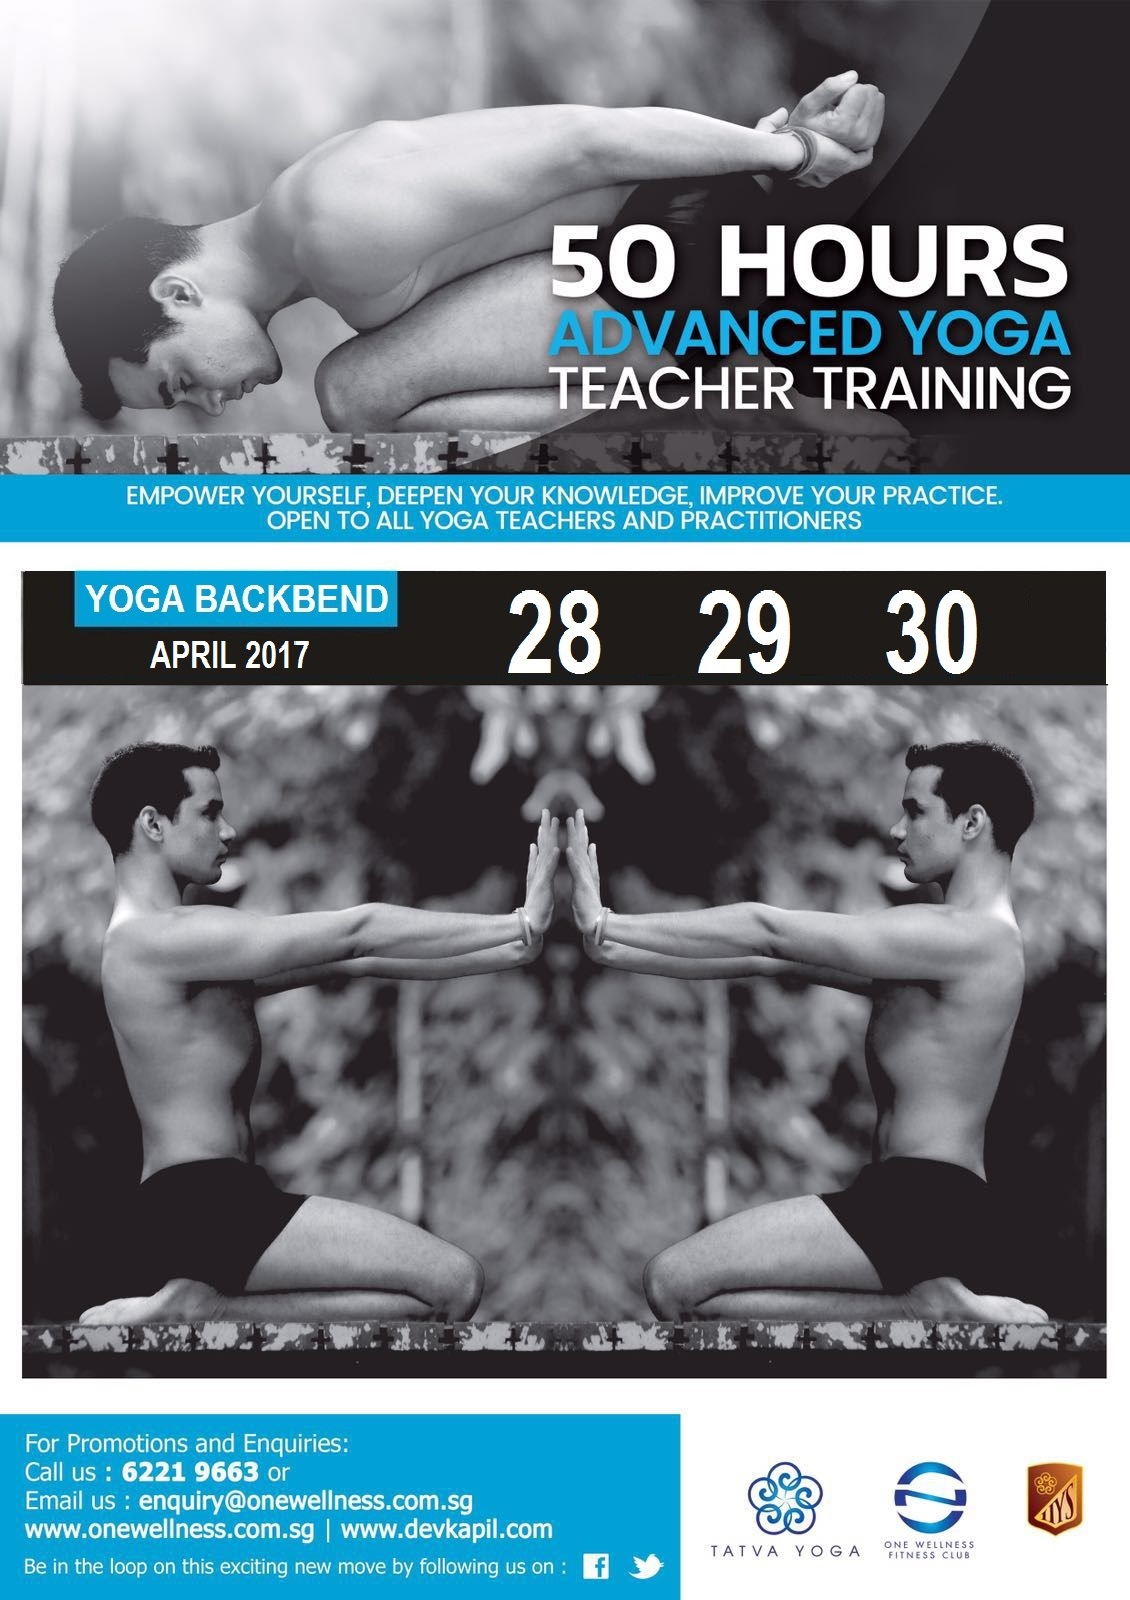 50 Hours Advanced Yoga Teacher Training